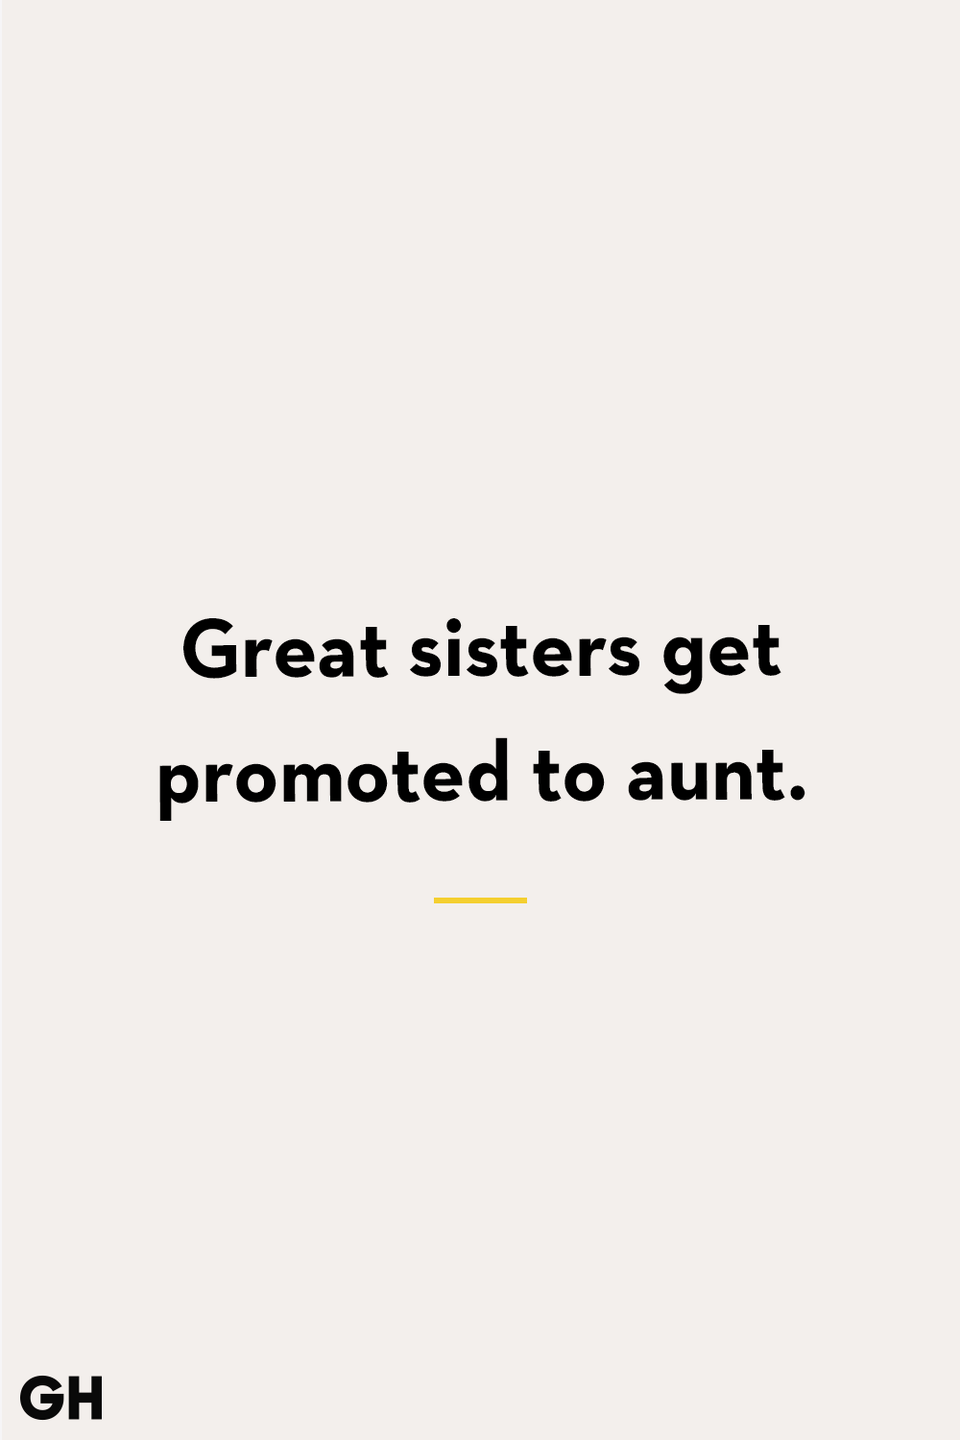 23 Quotes to Celebrate Your Favorite Aunt